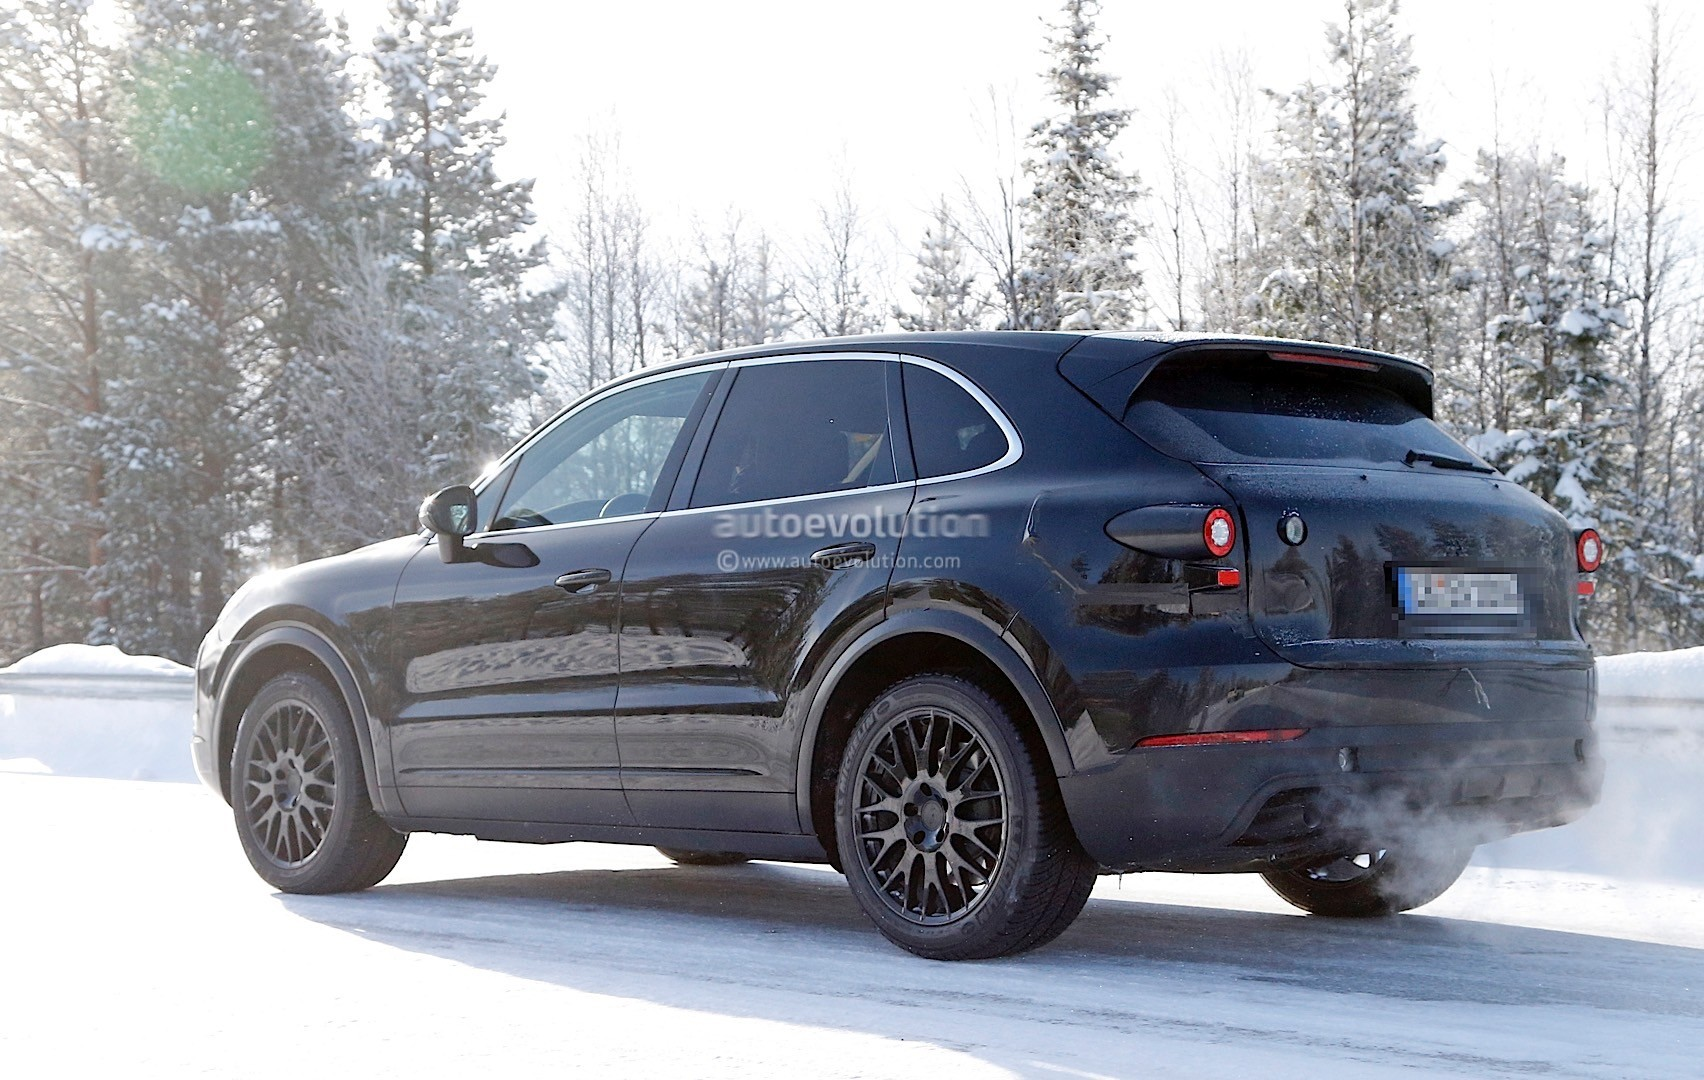 2018-porsche-cayenne-spied-once-more-enjoying-the-last-bits-of-winter_7